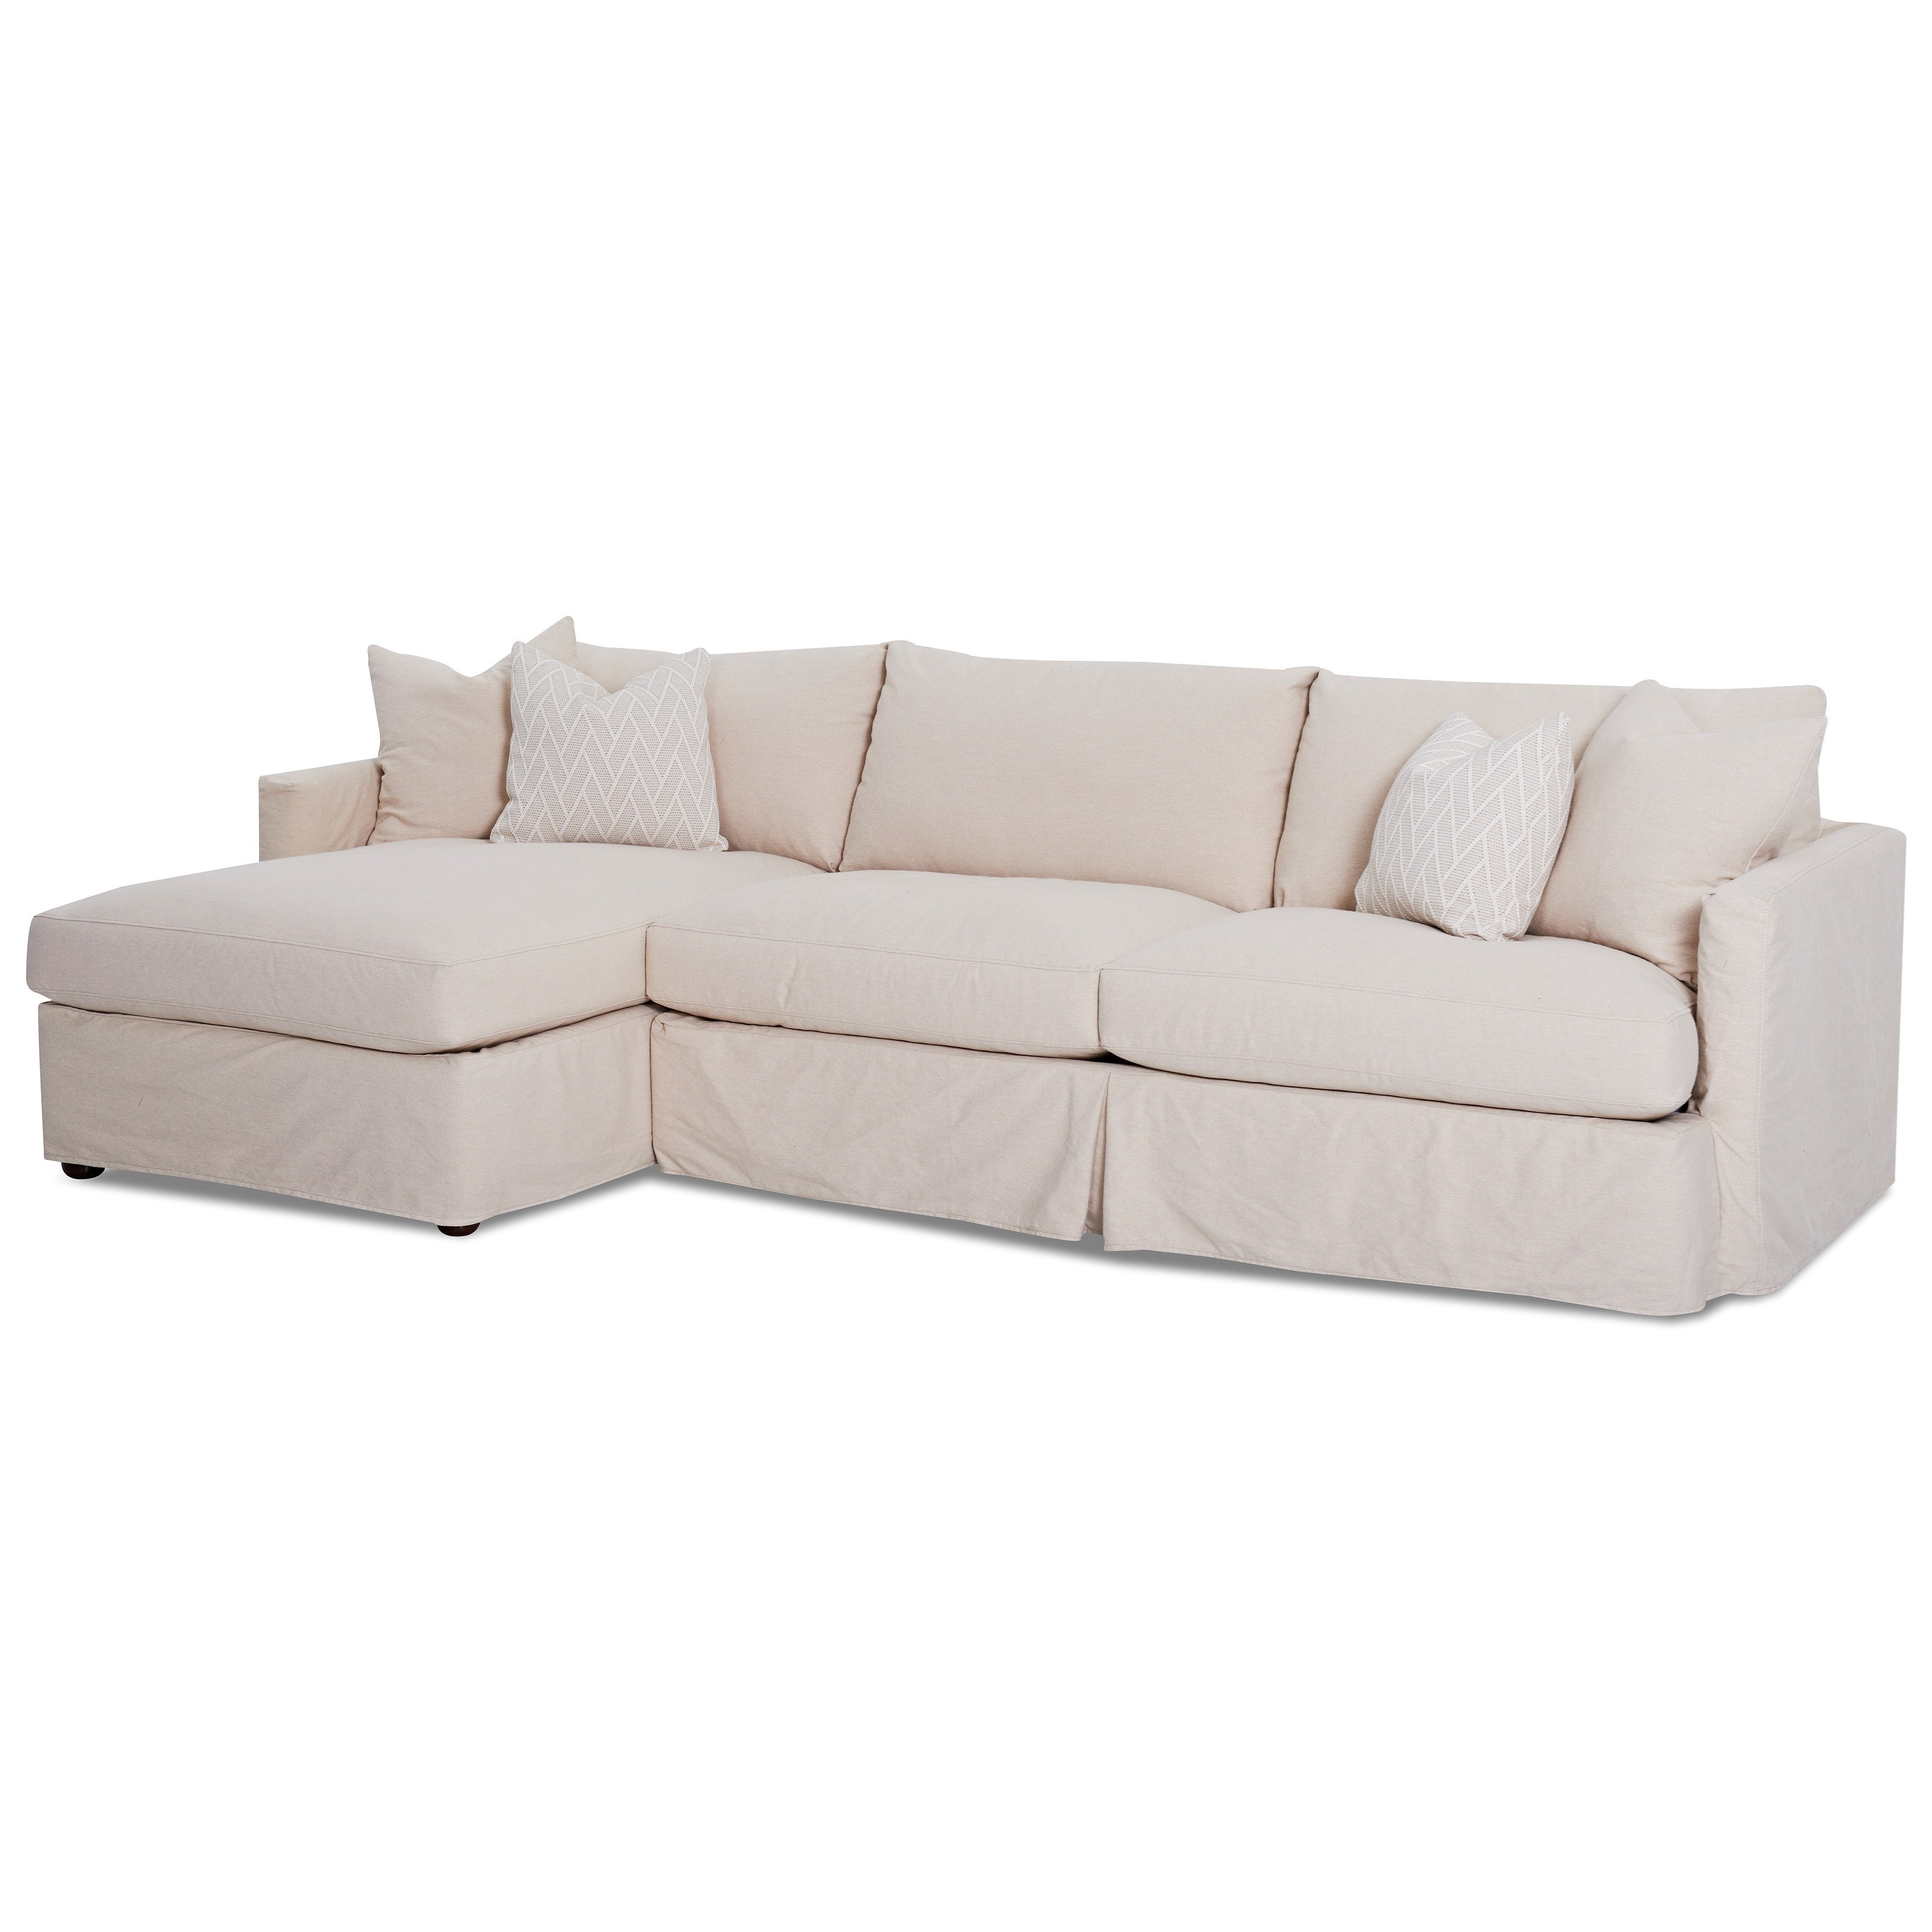 Leisure 2 Pc Sectional Sofa With Slipcover And LAF Chaise By Klaussner